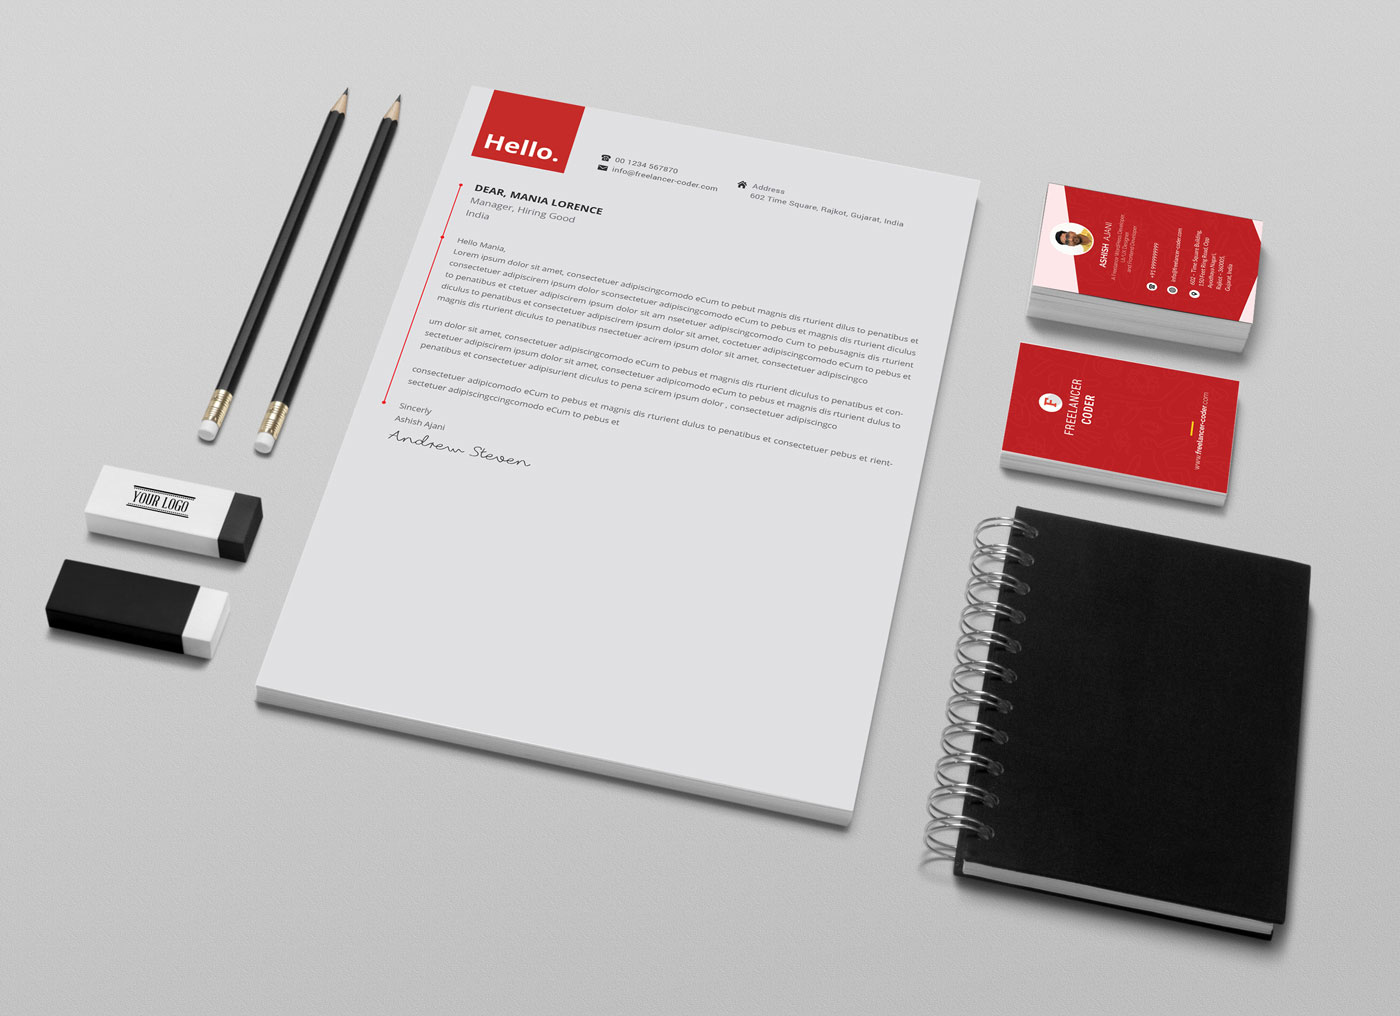 Free-Modern-Resume-Template-Cover-Letter-&-Portfolio-in-PSD-for-Web-Designer-Coder (3)